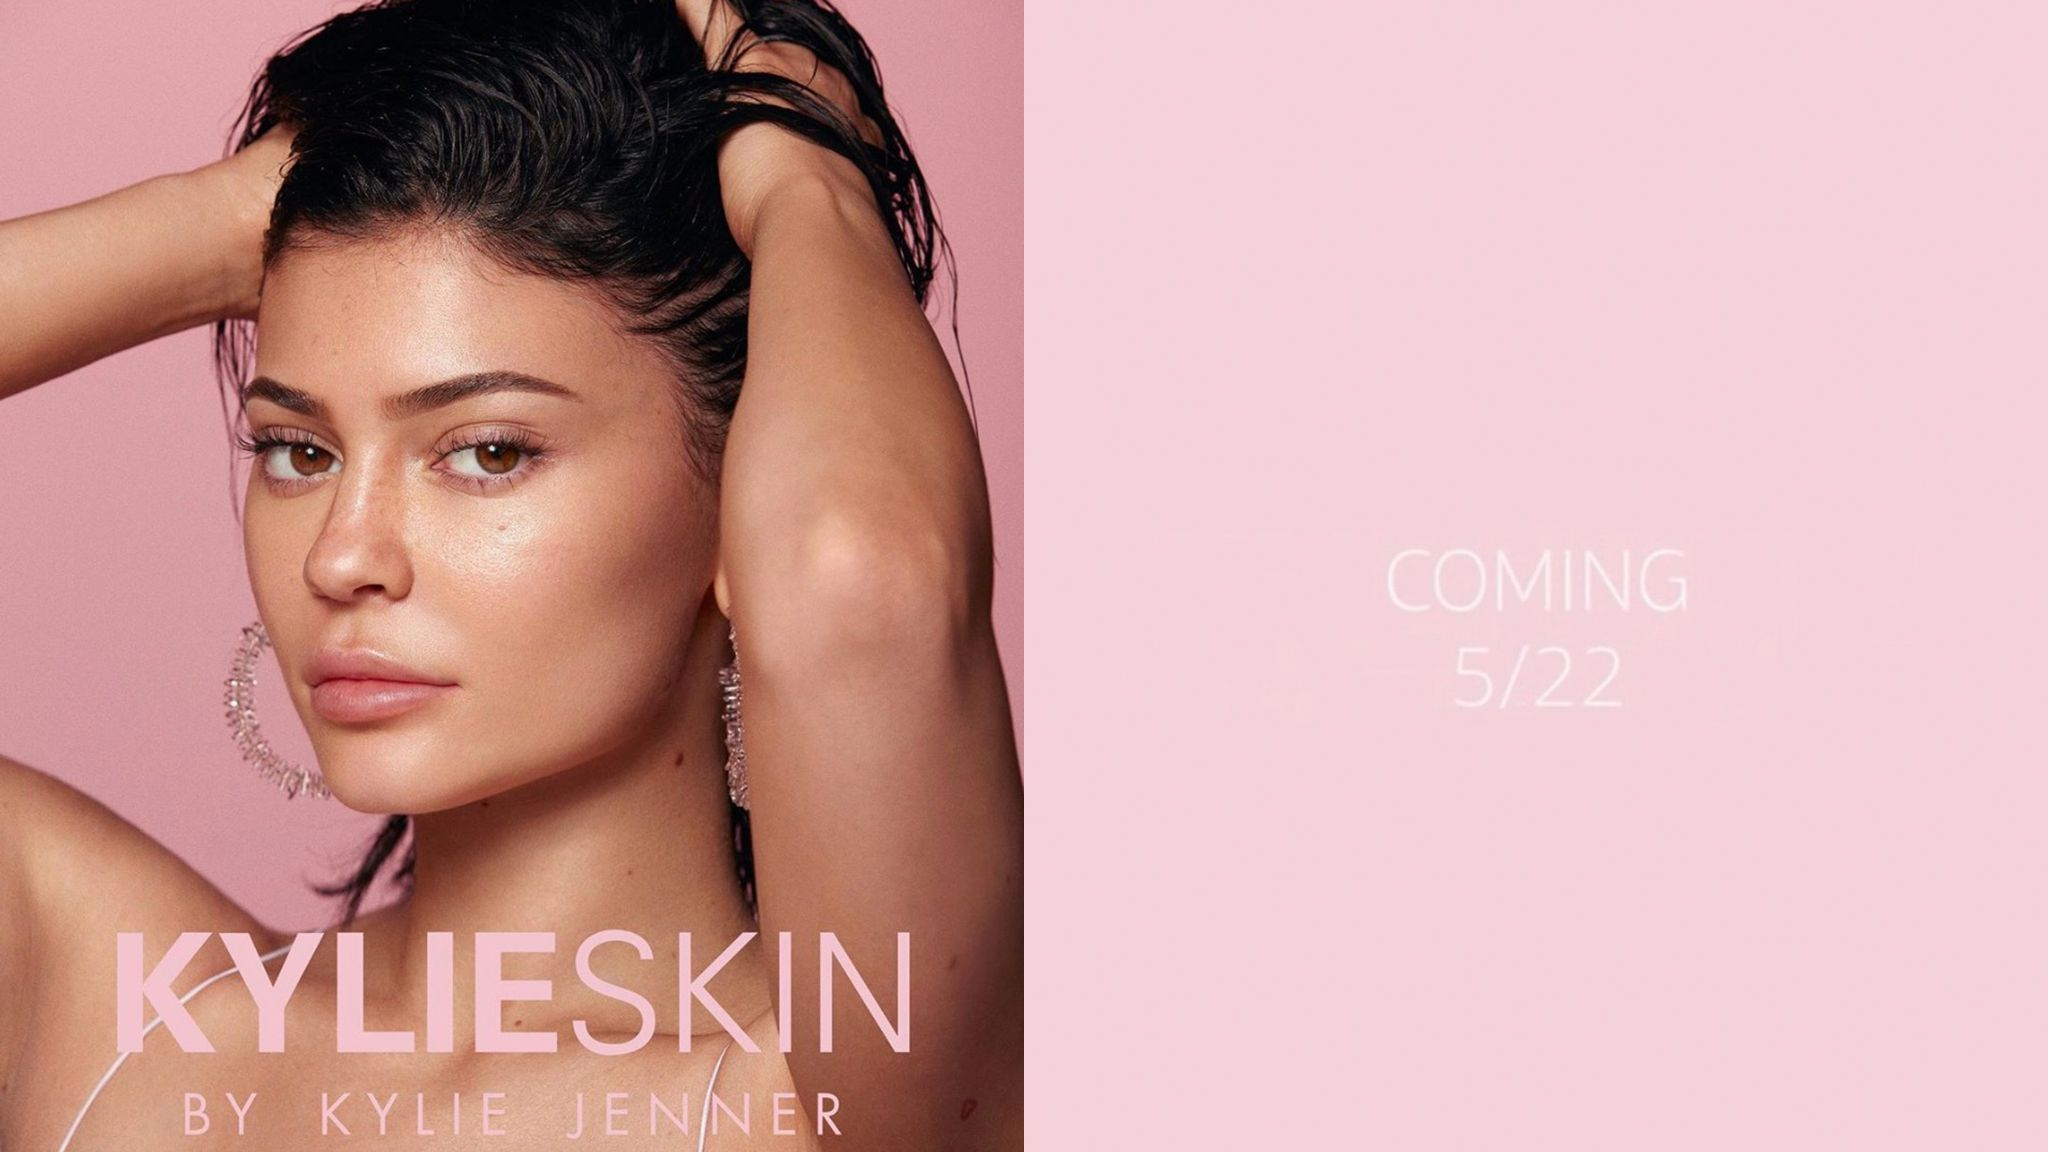 Kylie Jenner Launches Skincare Line Kylie Skin Will You Buy Kyliejenner Kylieskin Skincare Kylie Jenner Kylie Jenner